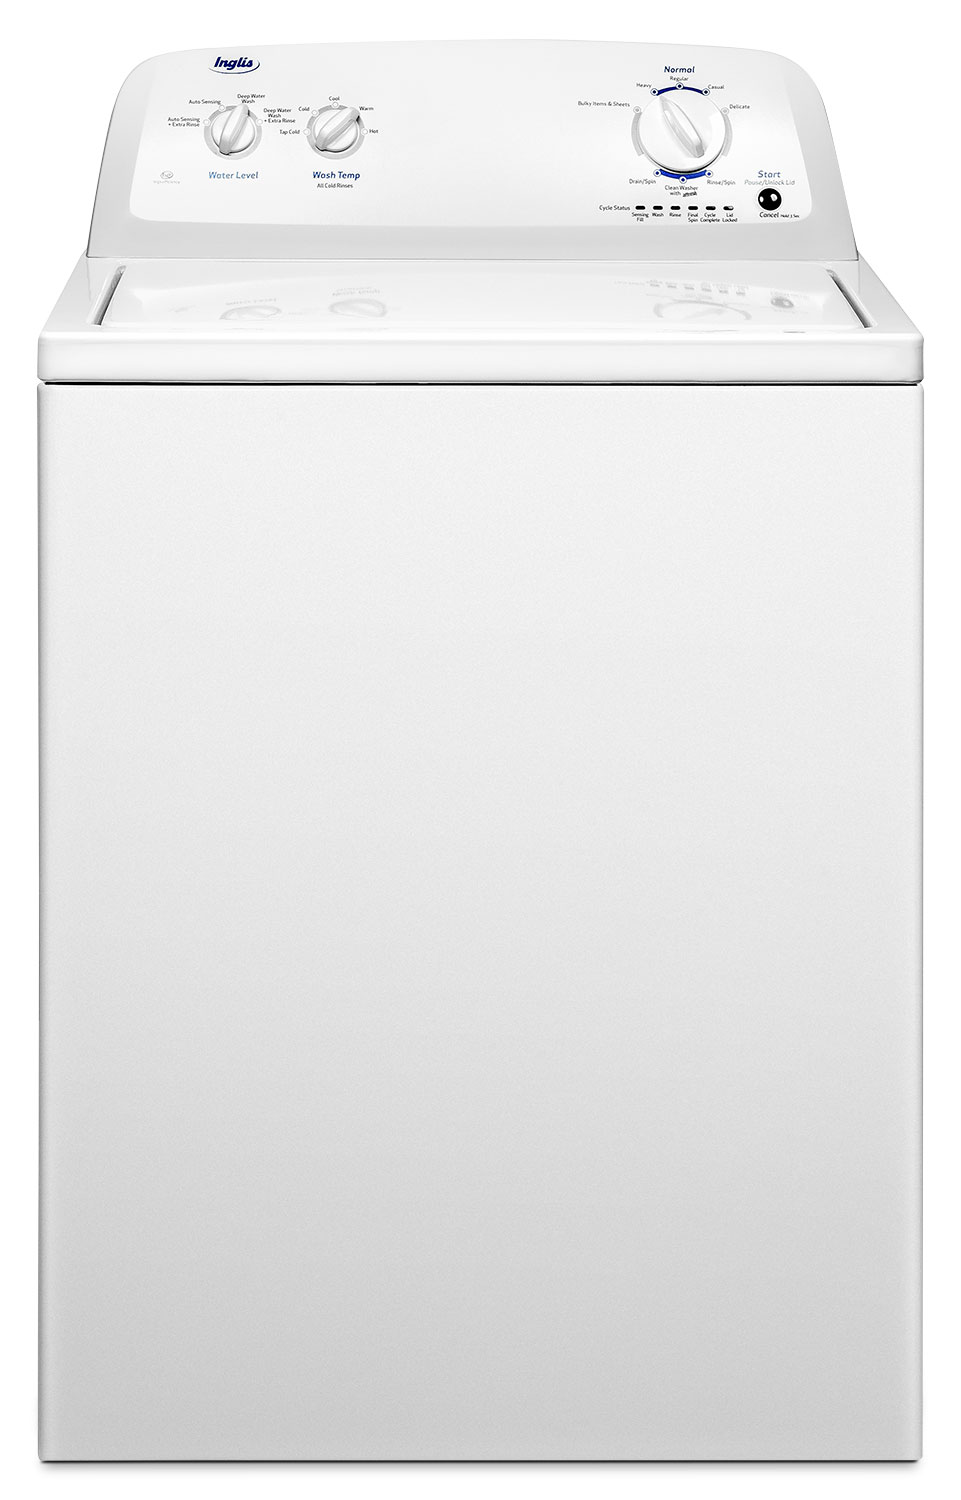 Inglis 4.0 Cu. Ft. Top-Load Washer – ITW4871FW